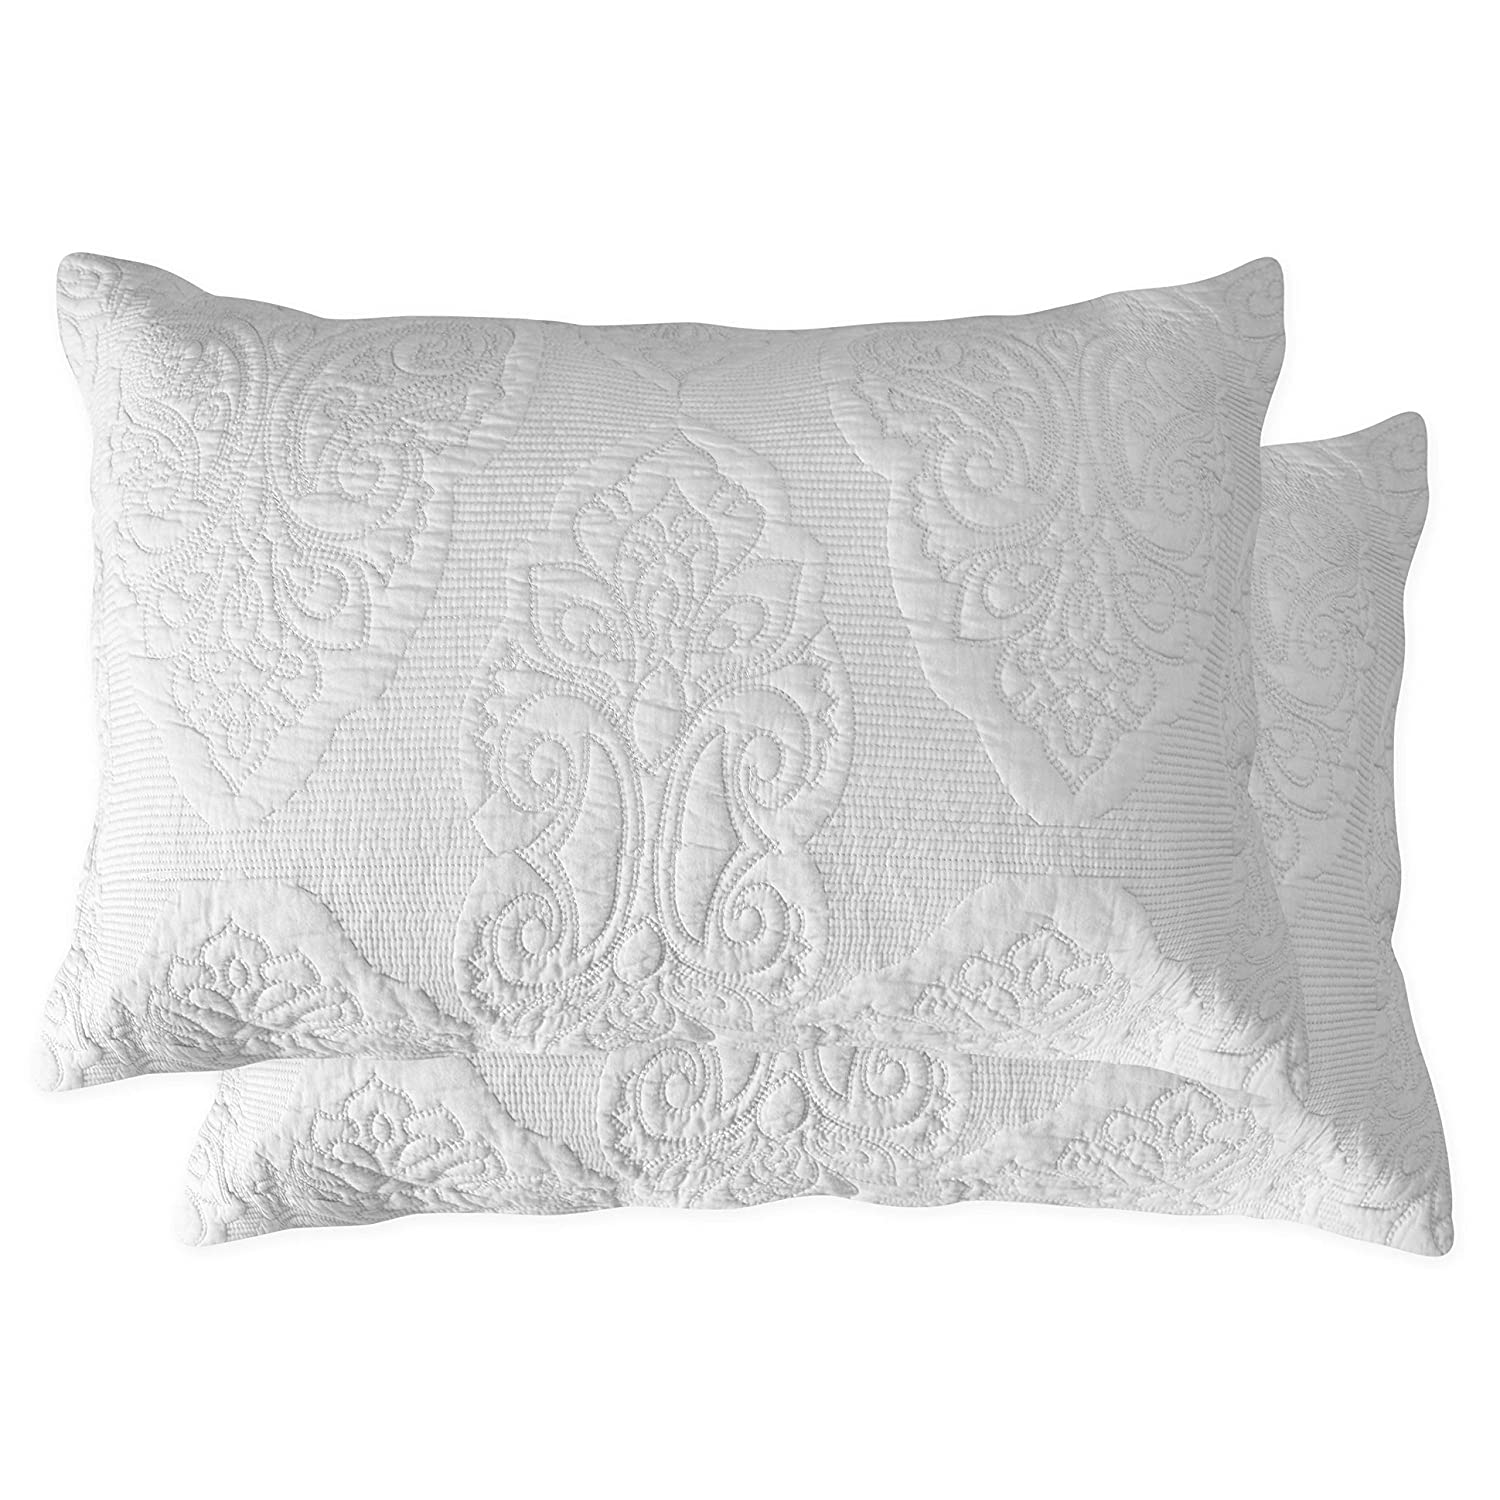 Brandream White Paisley Quilted Pillow Shams Standard Size Pillow Cases Set of 2 100% Cotton Soft Decorative Pillow Covers bed accessories Bed Accessories – Top accessories for bed that every bedroom need 81DZ jxXb6L